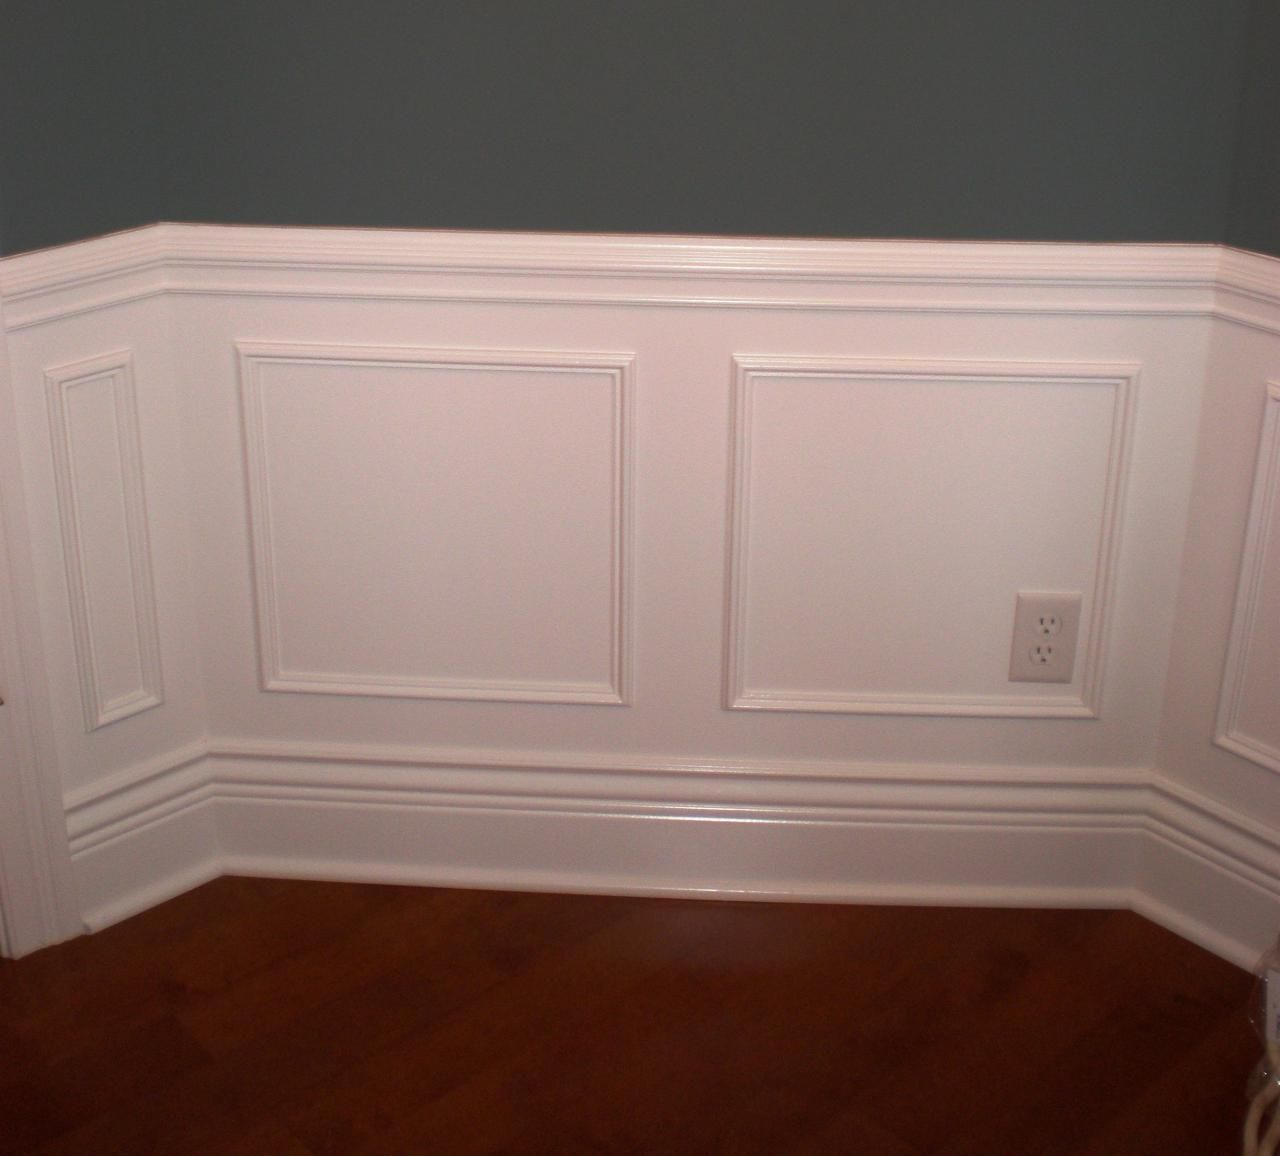 Chair Rail Moulding Ideas Part - 29: 30+ Best Chair Rail Ideas, Pictures, Decor And Remodel